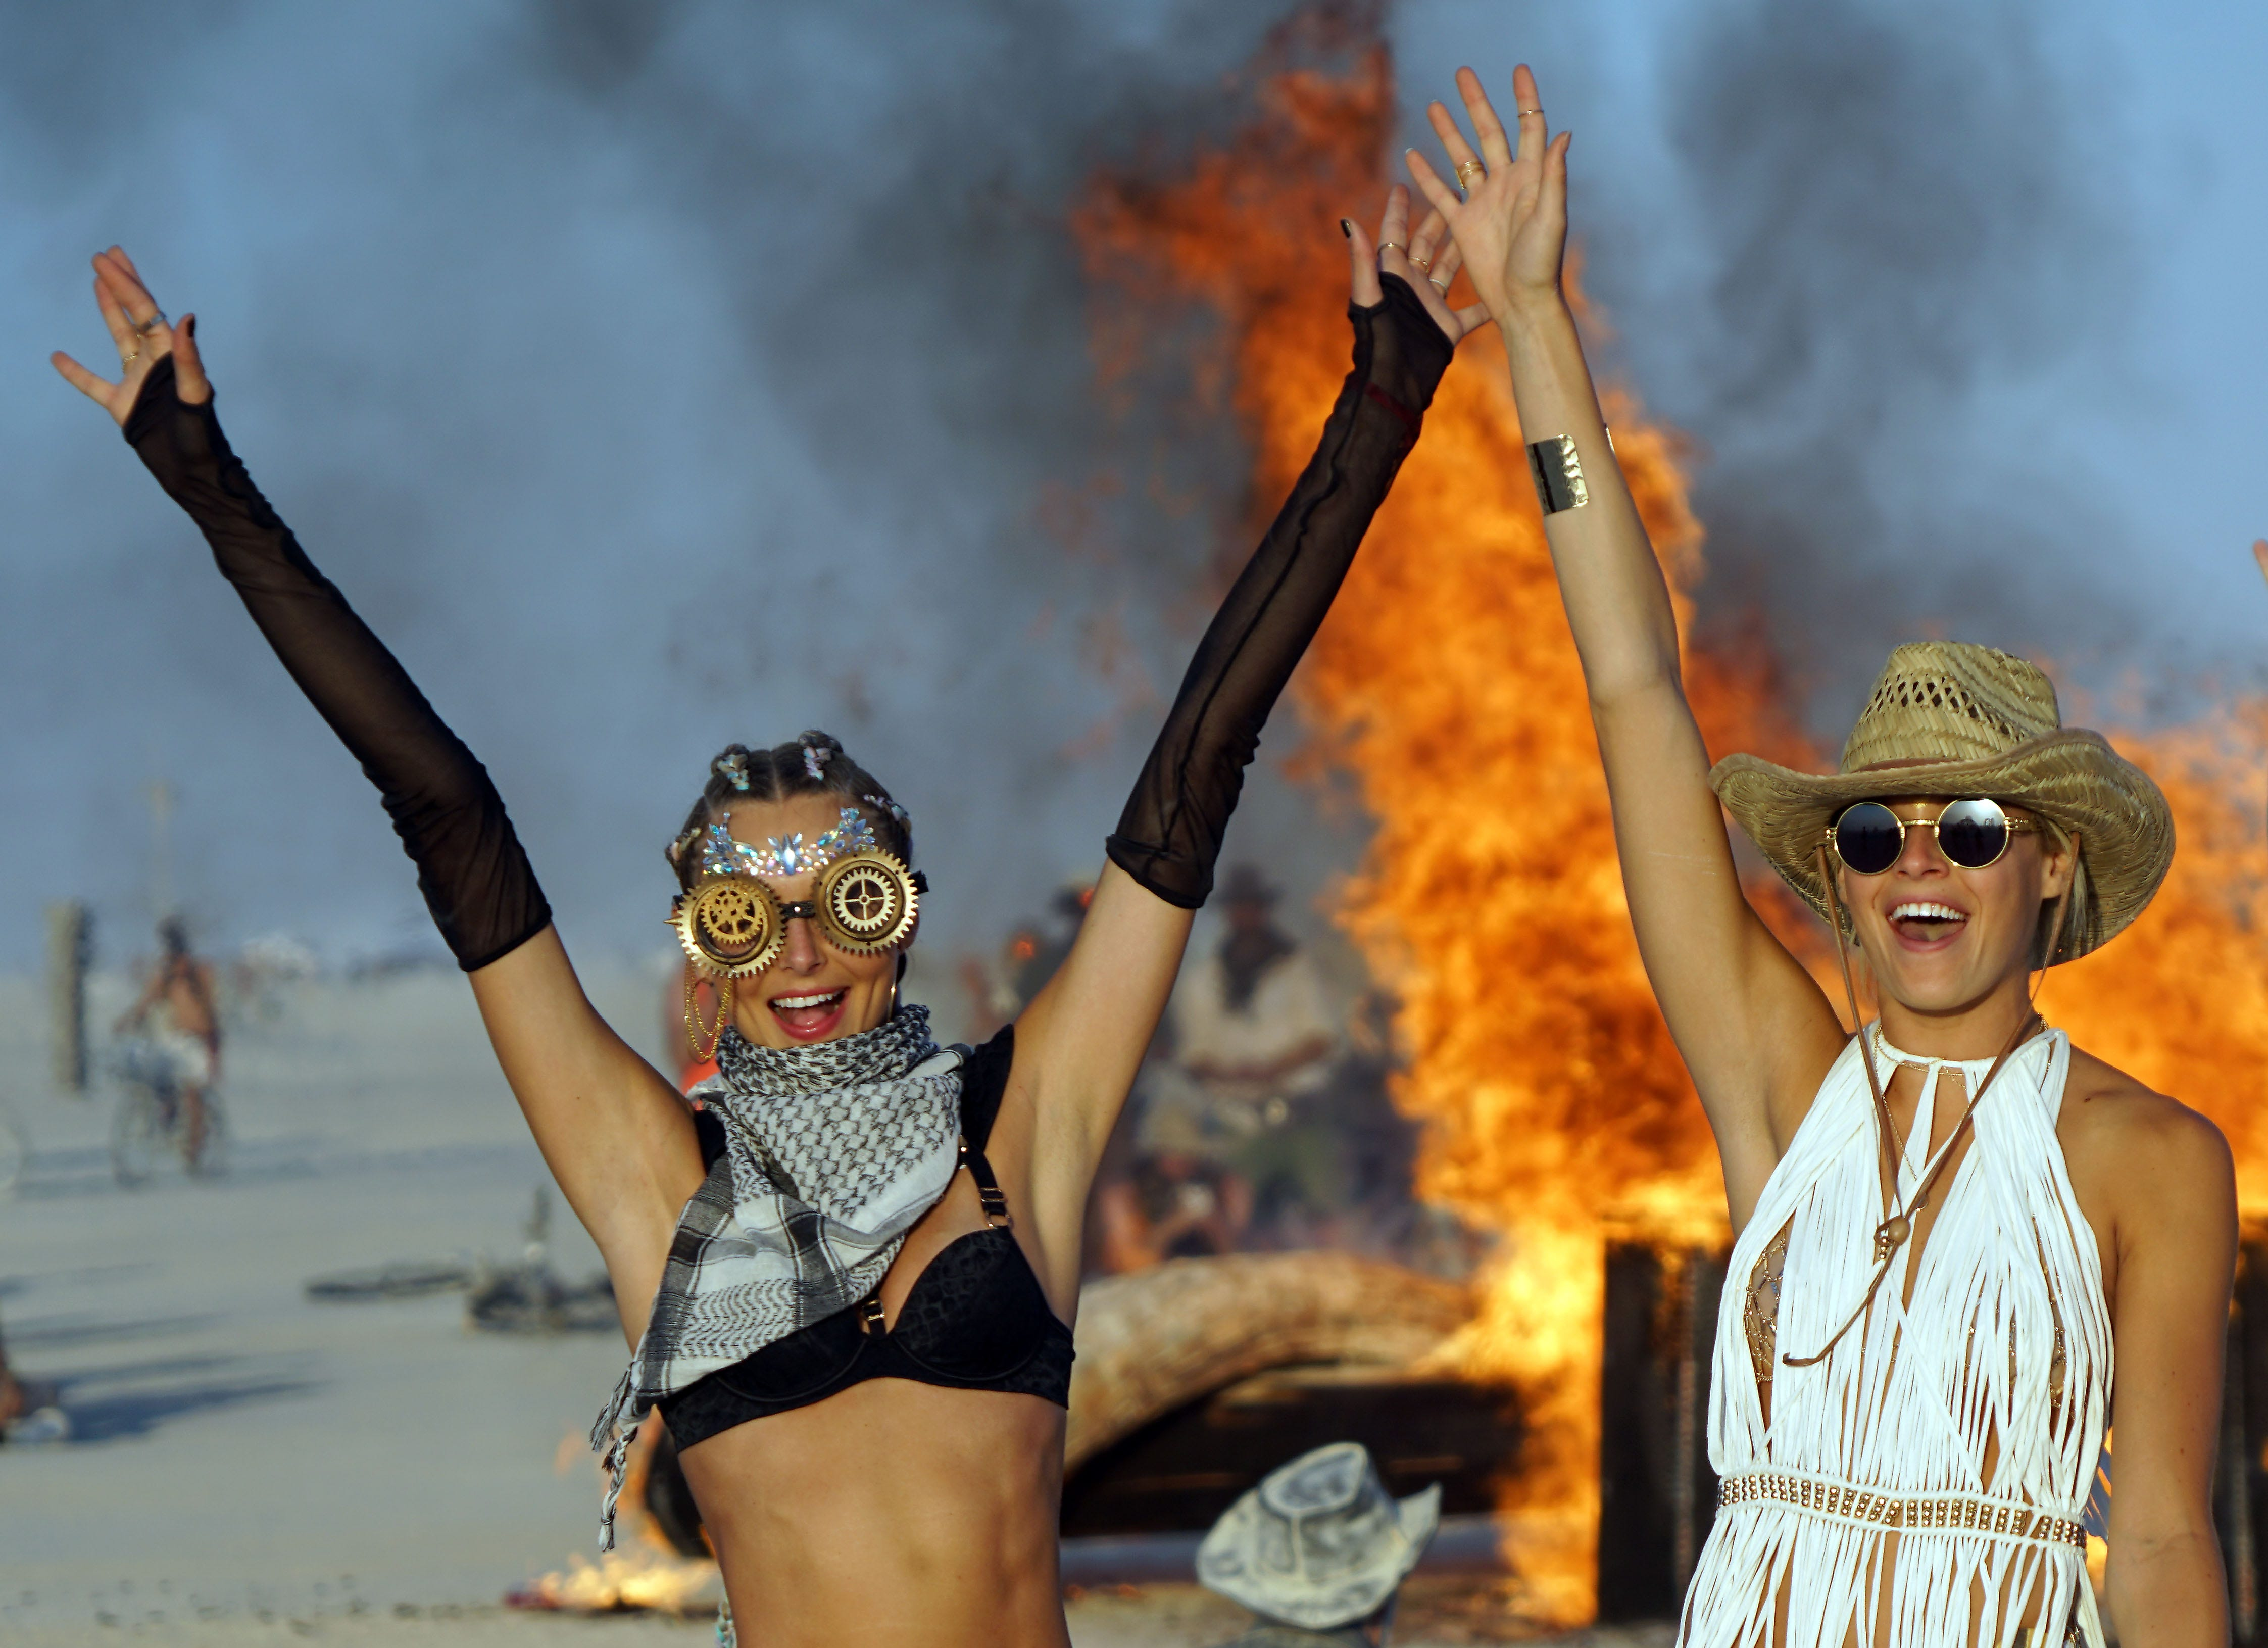 Models Ludi Delfino and Abby Neff pose for photos in front of a burning piece of artwork at Burning Man Aug 31, 2018.